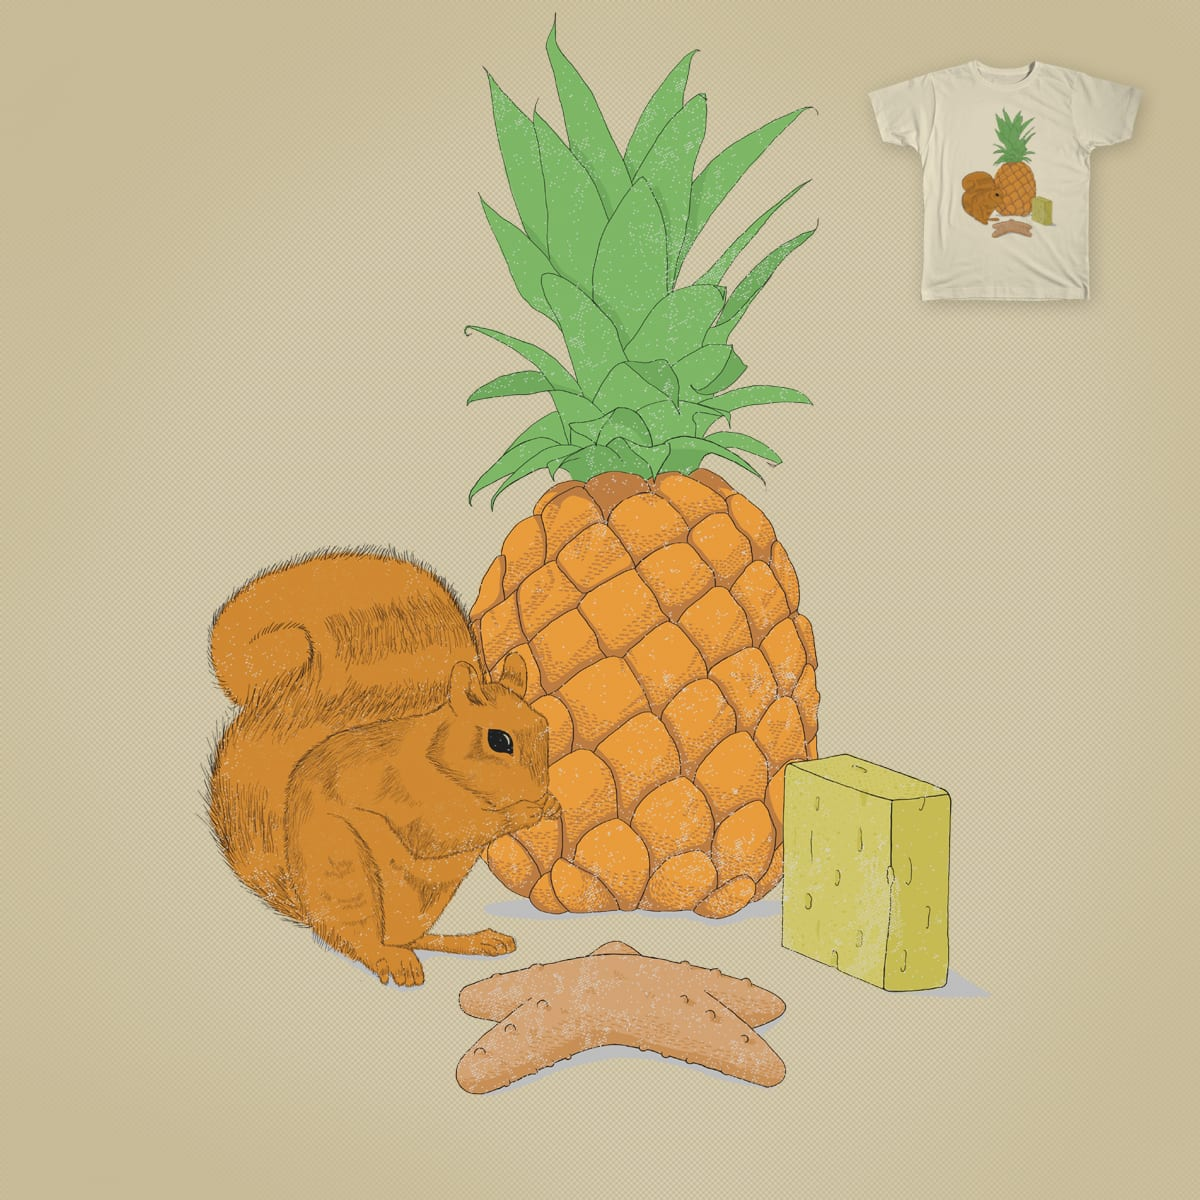 who lives in a pineapple under the sea. by BouquinisteRip on Threadless